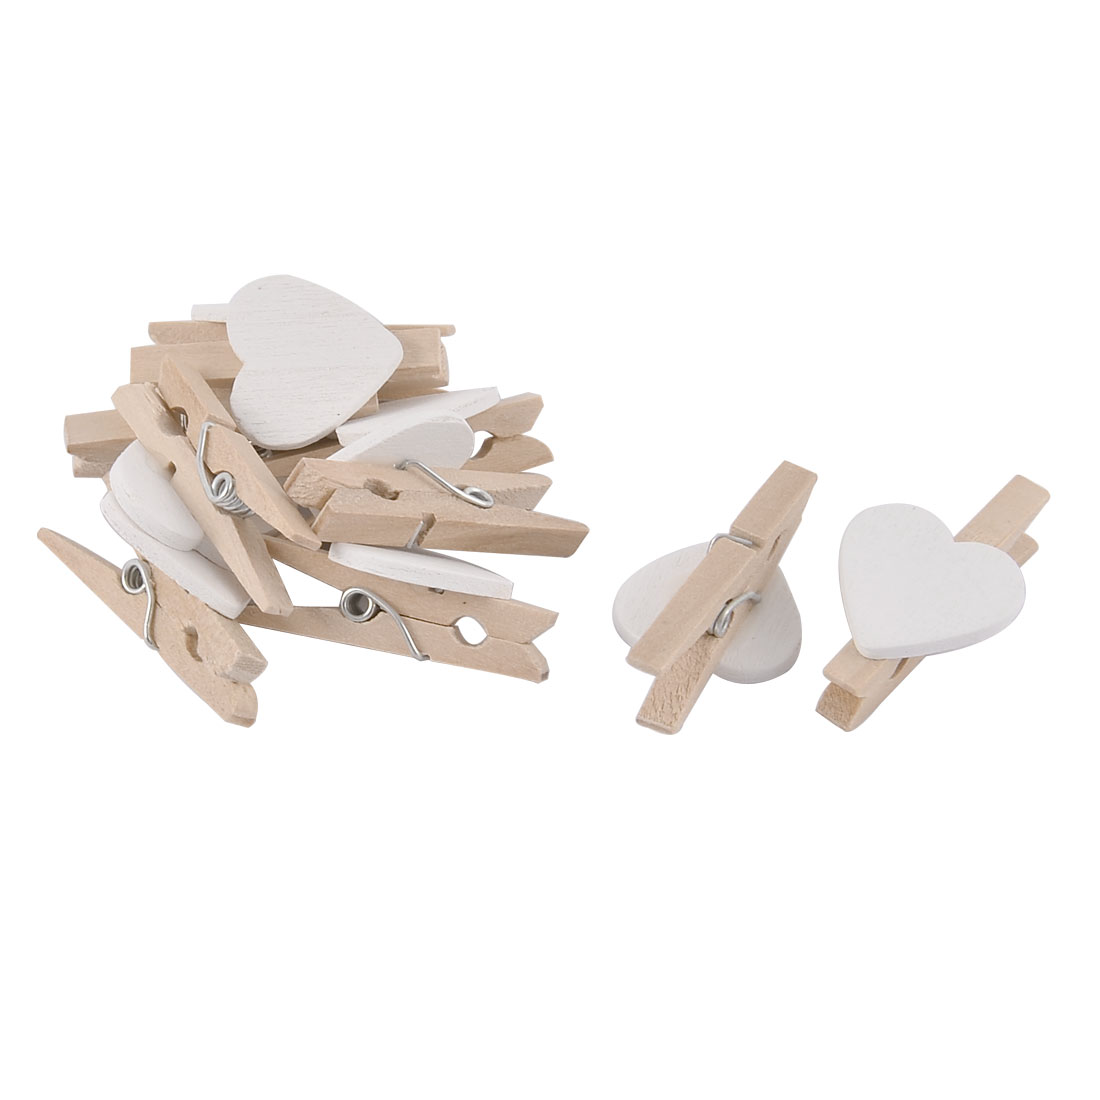 Card Photo Love Heart DIY Spring Pegs Crafts Mini Wooden Clip White 10pcs